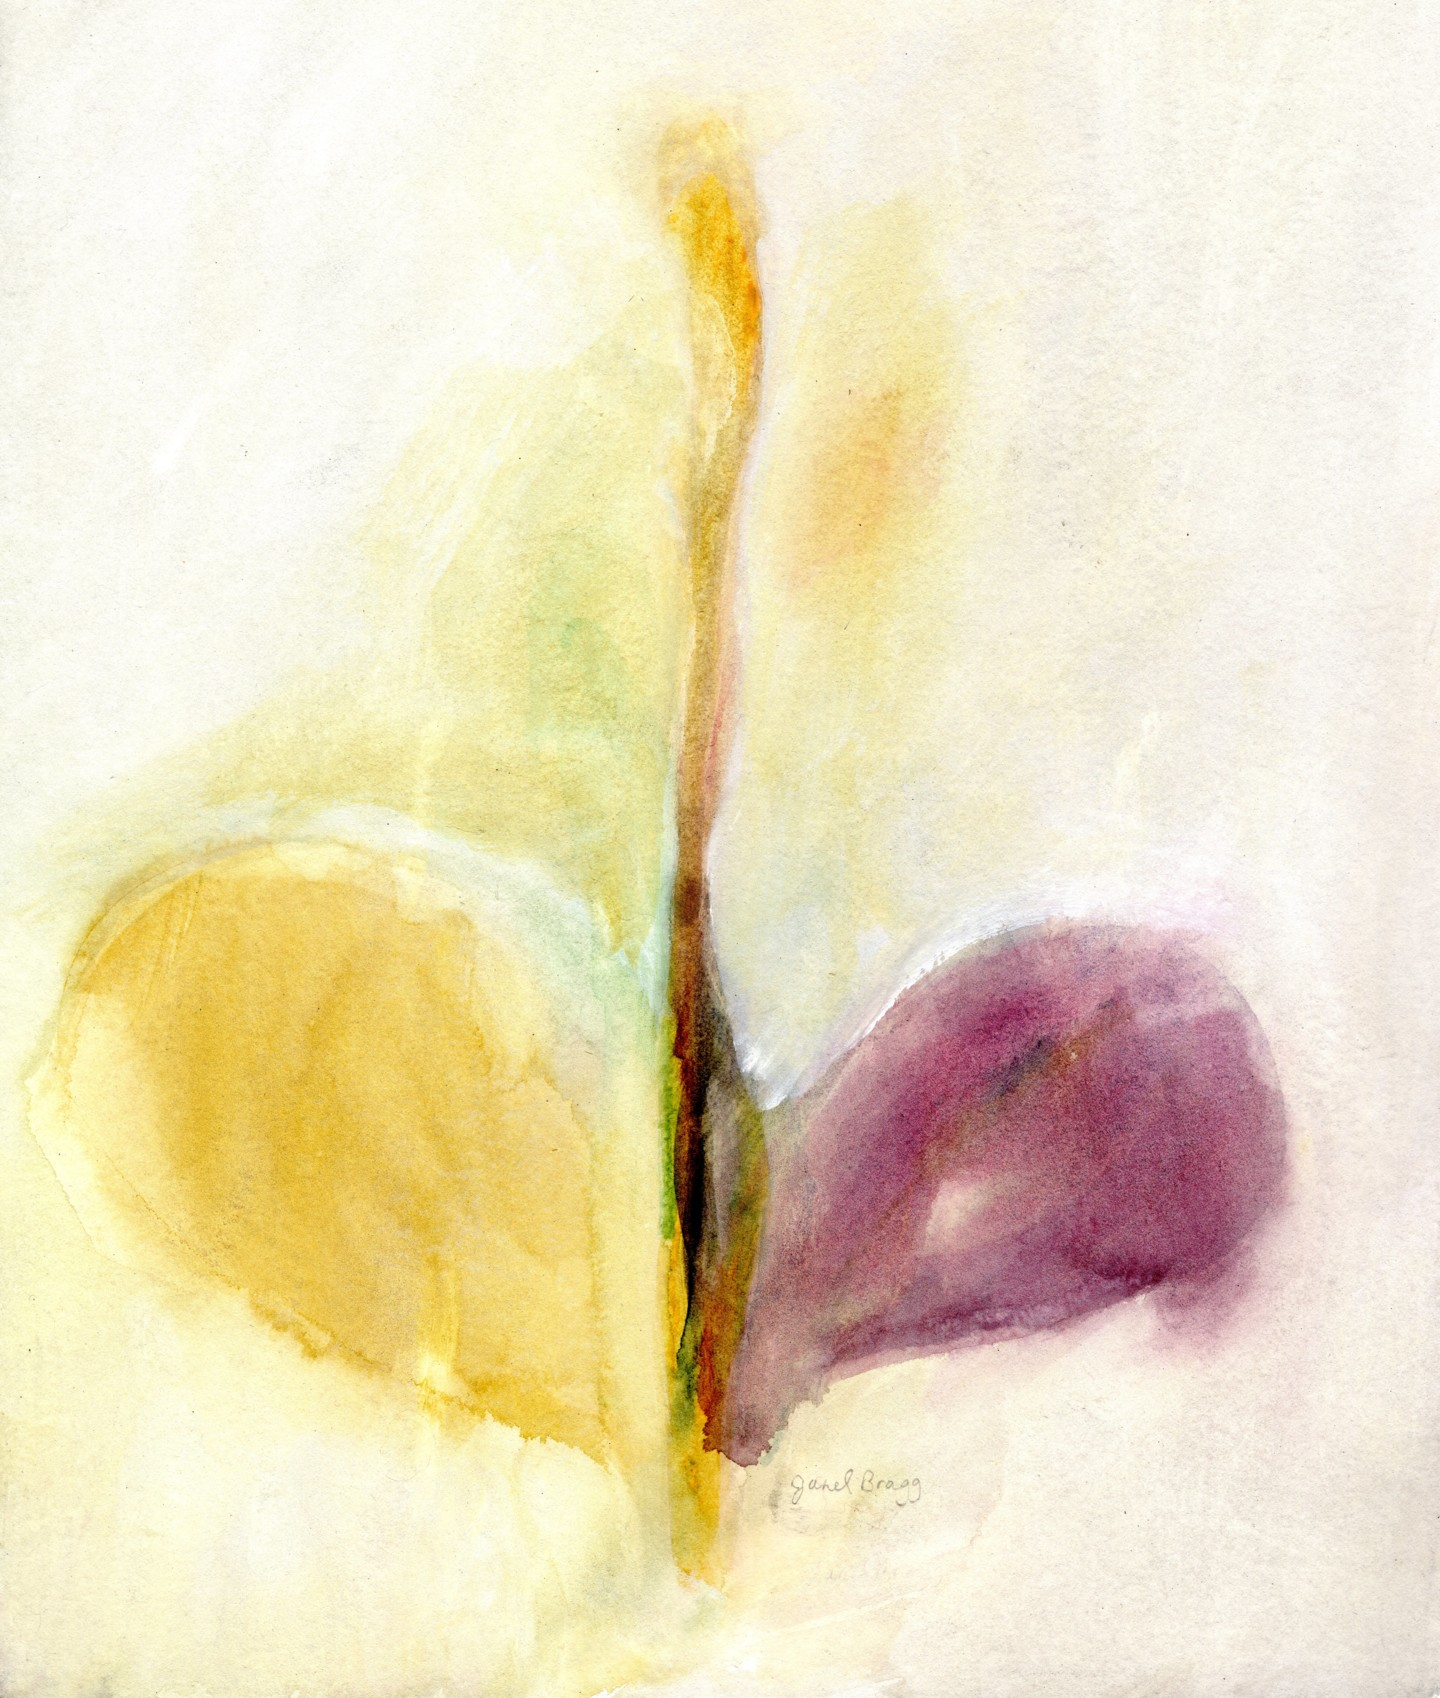 Janel Bragg - Abstract in Coming Back to Life